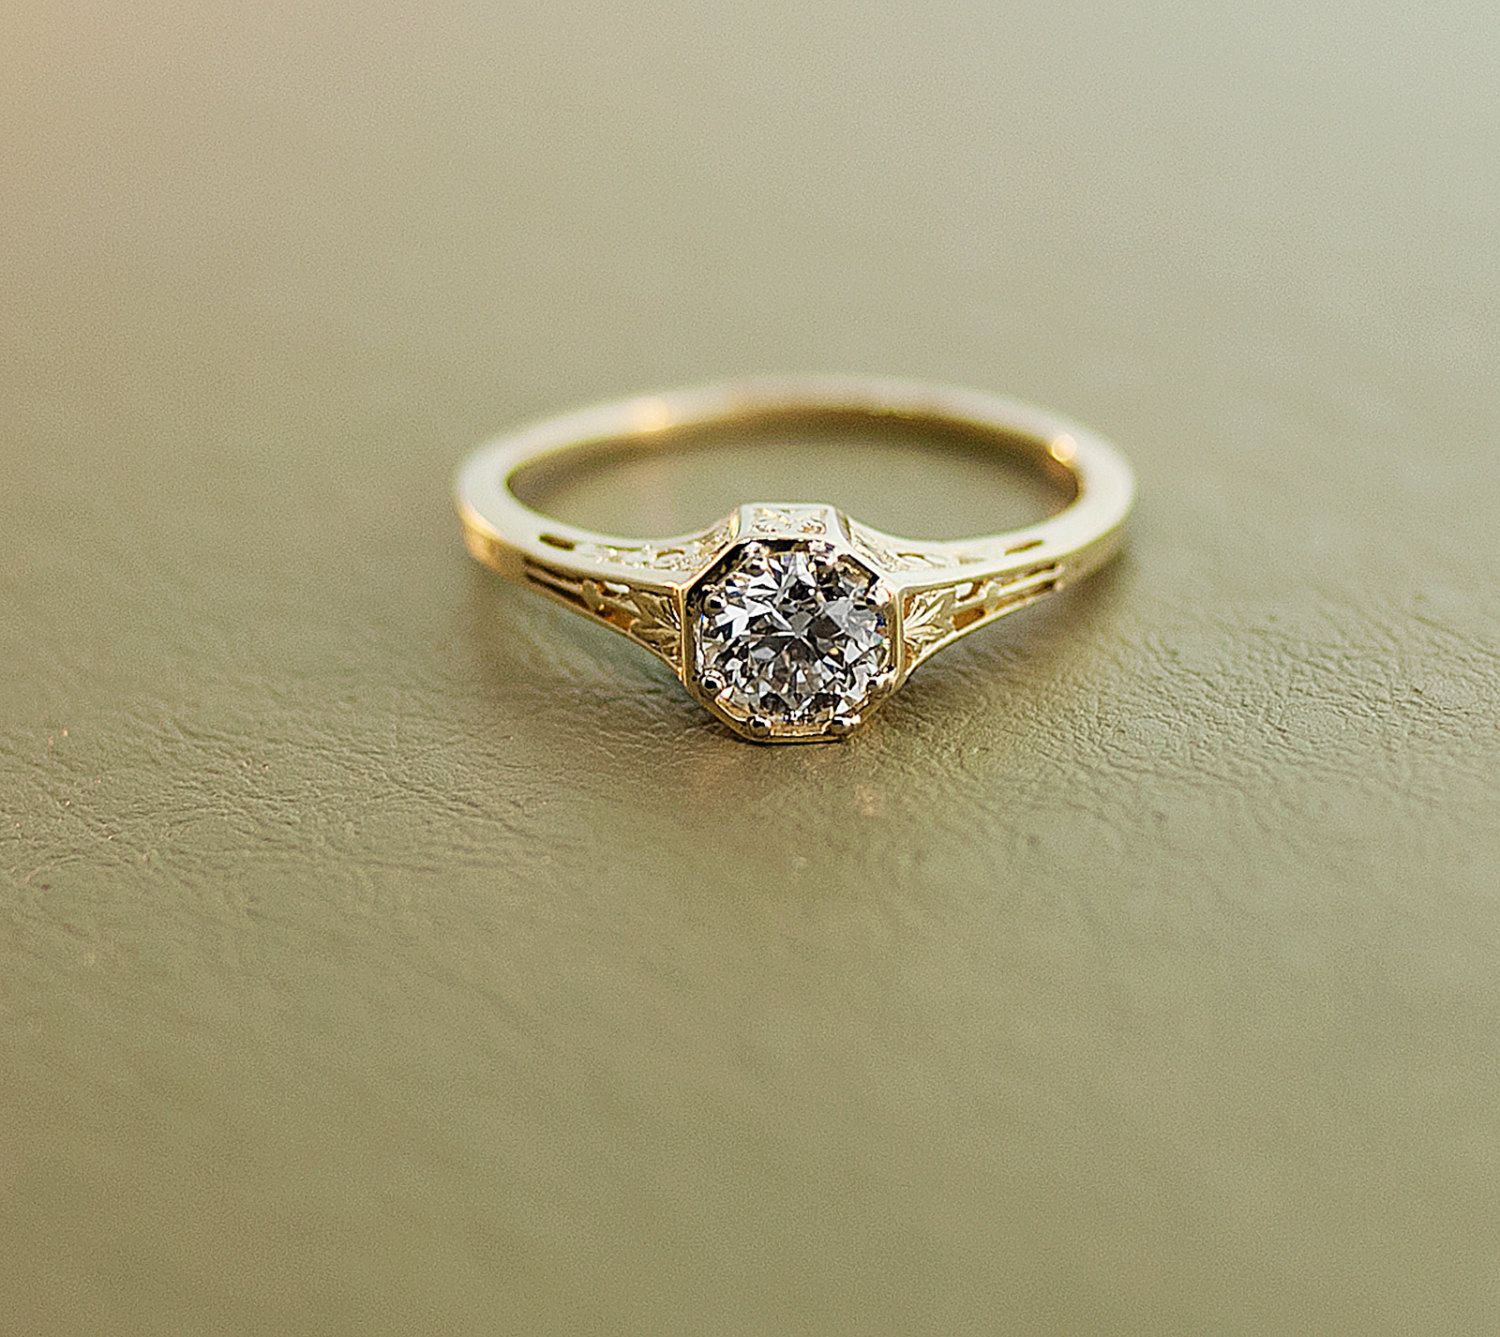 Diamond Engagement Rings And Ruby We Also Offer A Considerable Collection Of Antique Estate Gold Ringswedding